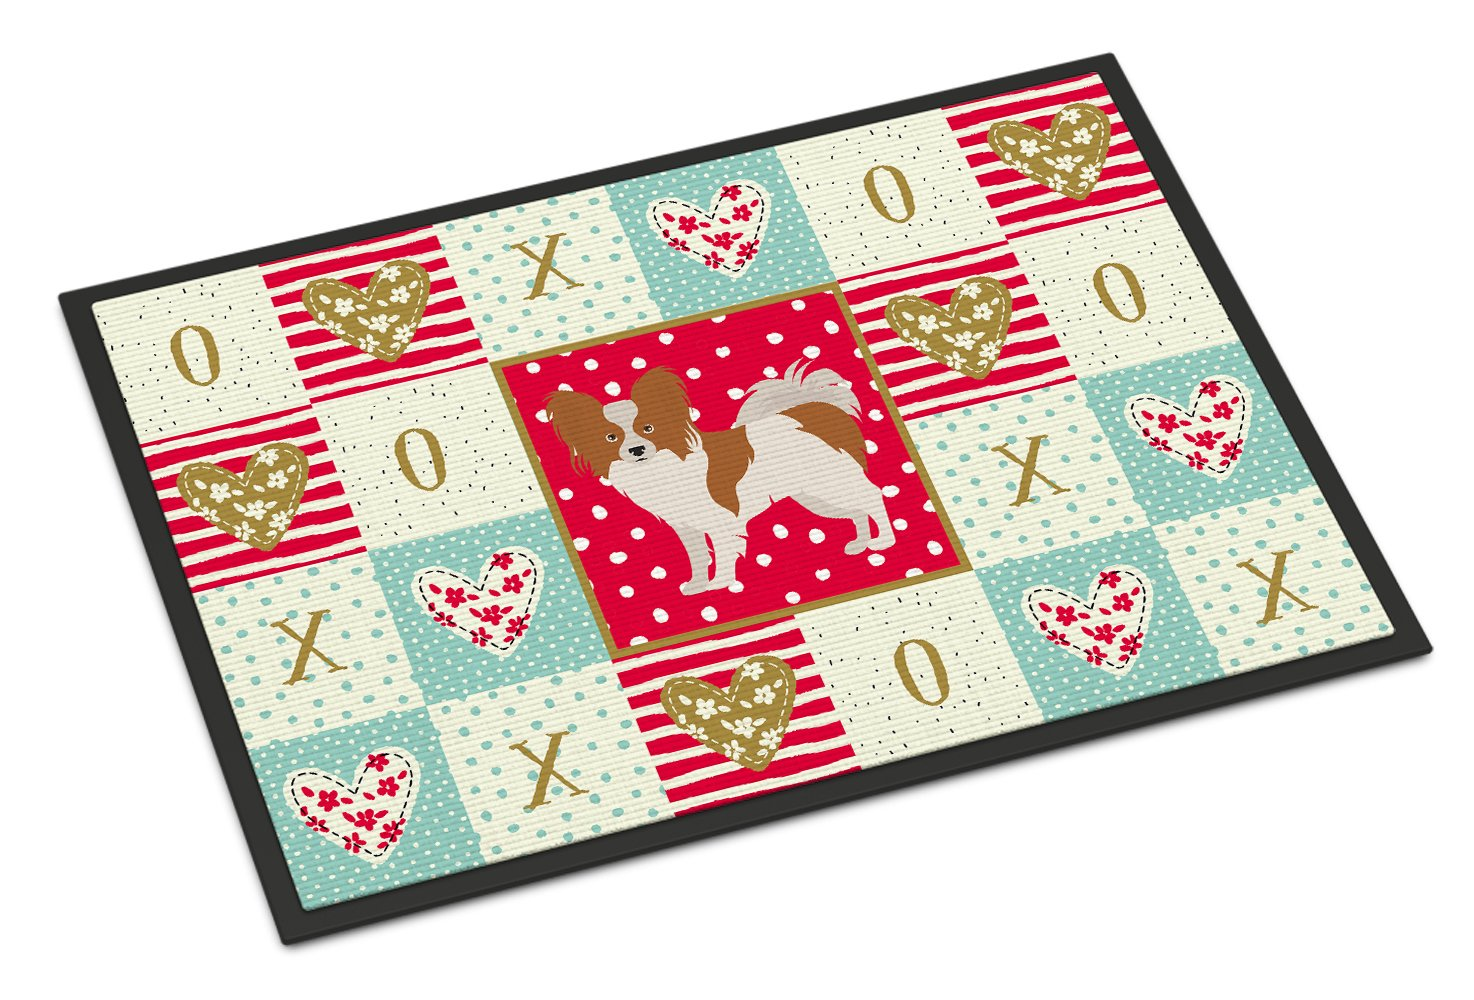 Papillon #1 Love Indoor or Outdoor Mat 24x36 CK5871JMAT by Caroline's Treasures